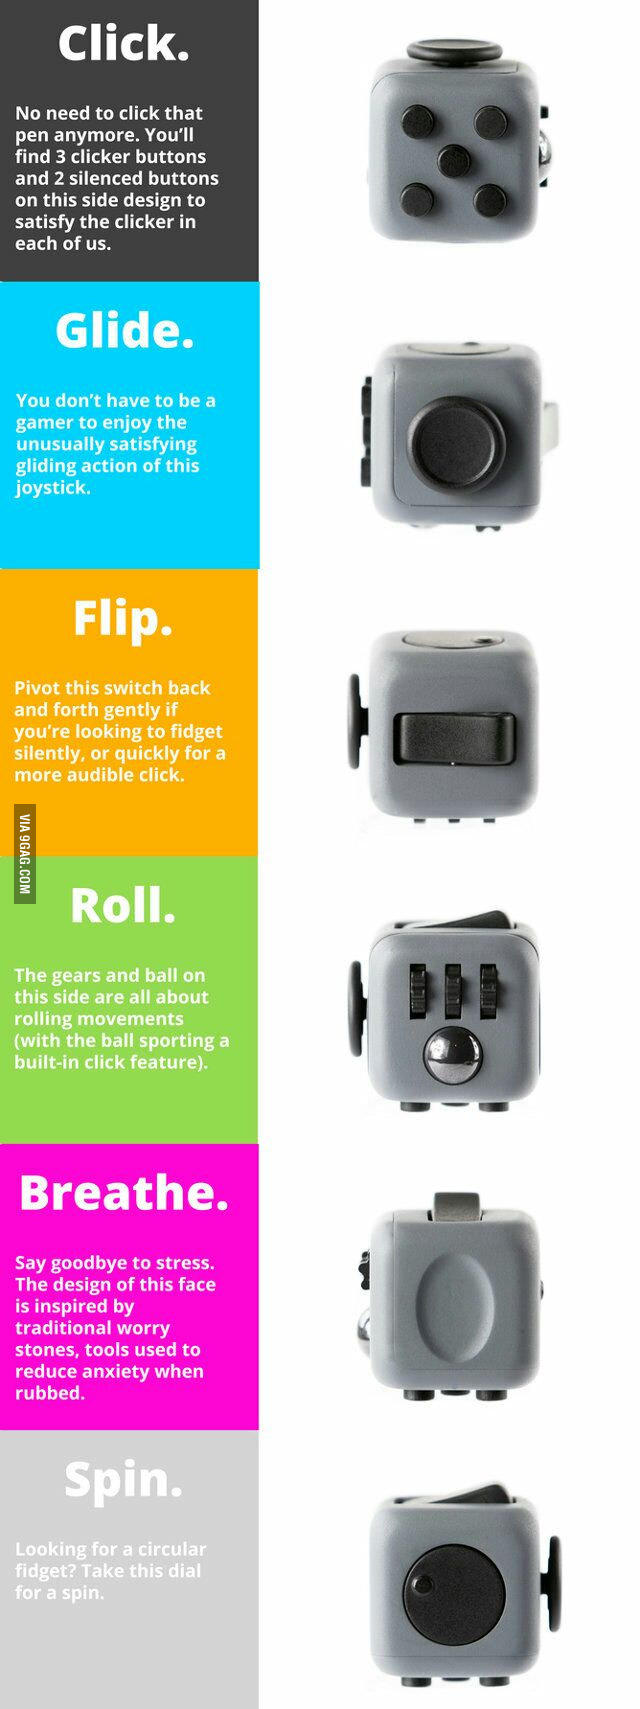 Would you buy the fidgety cube?